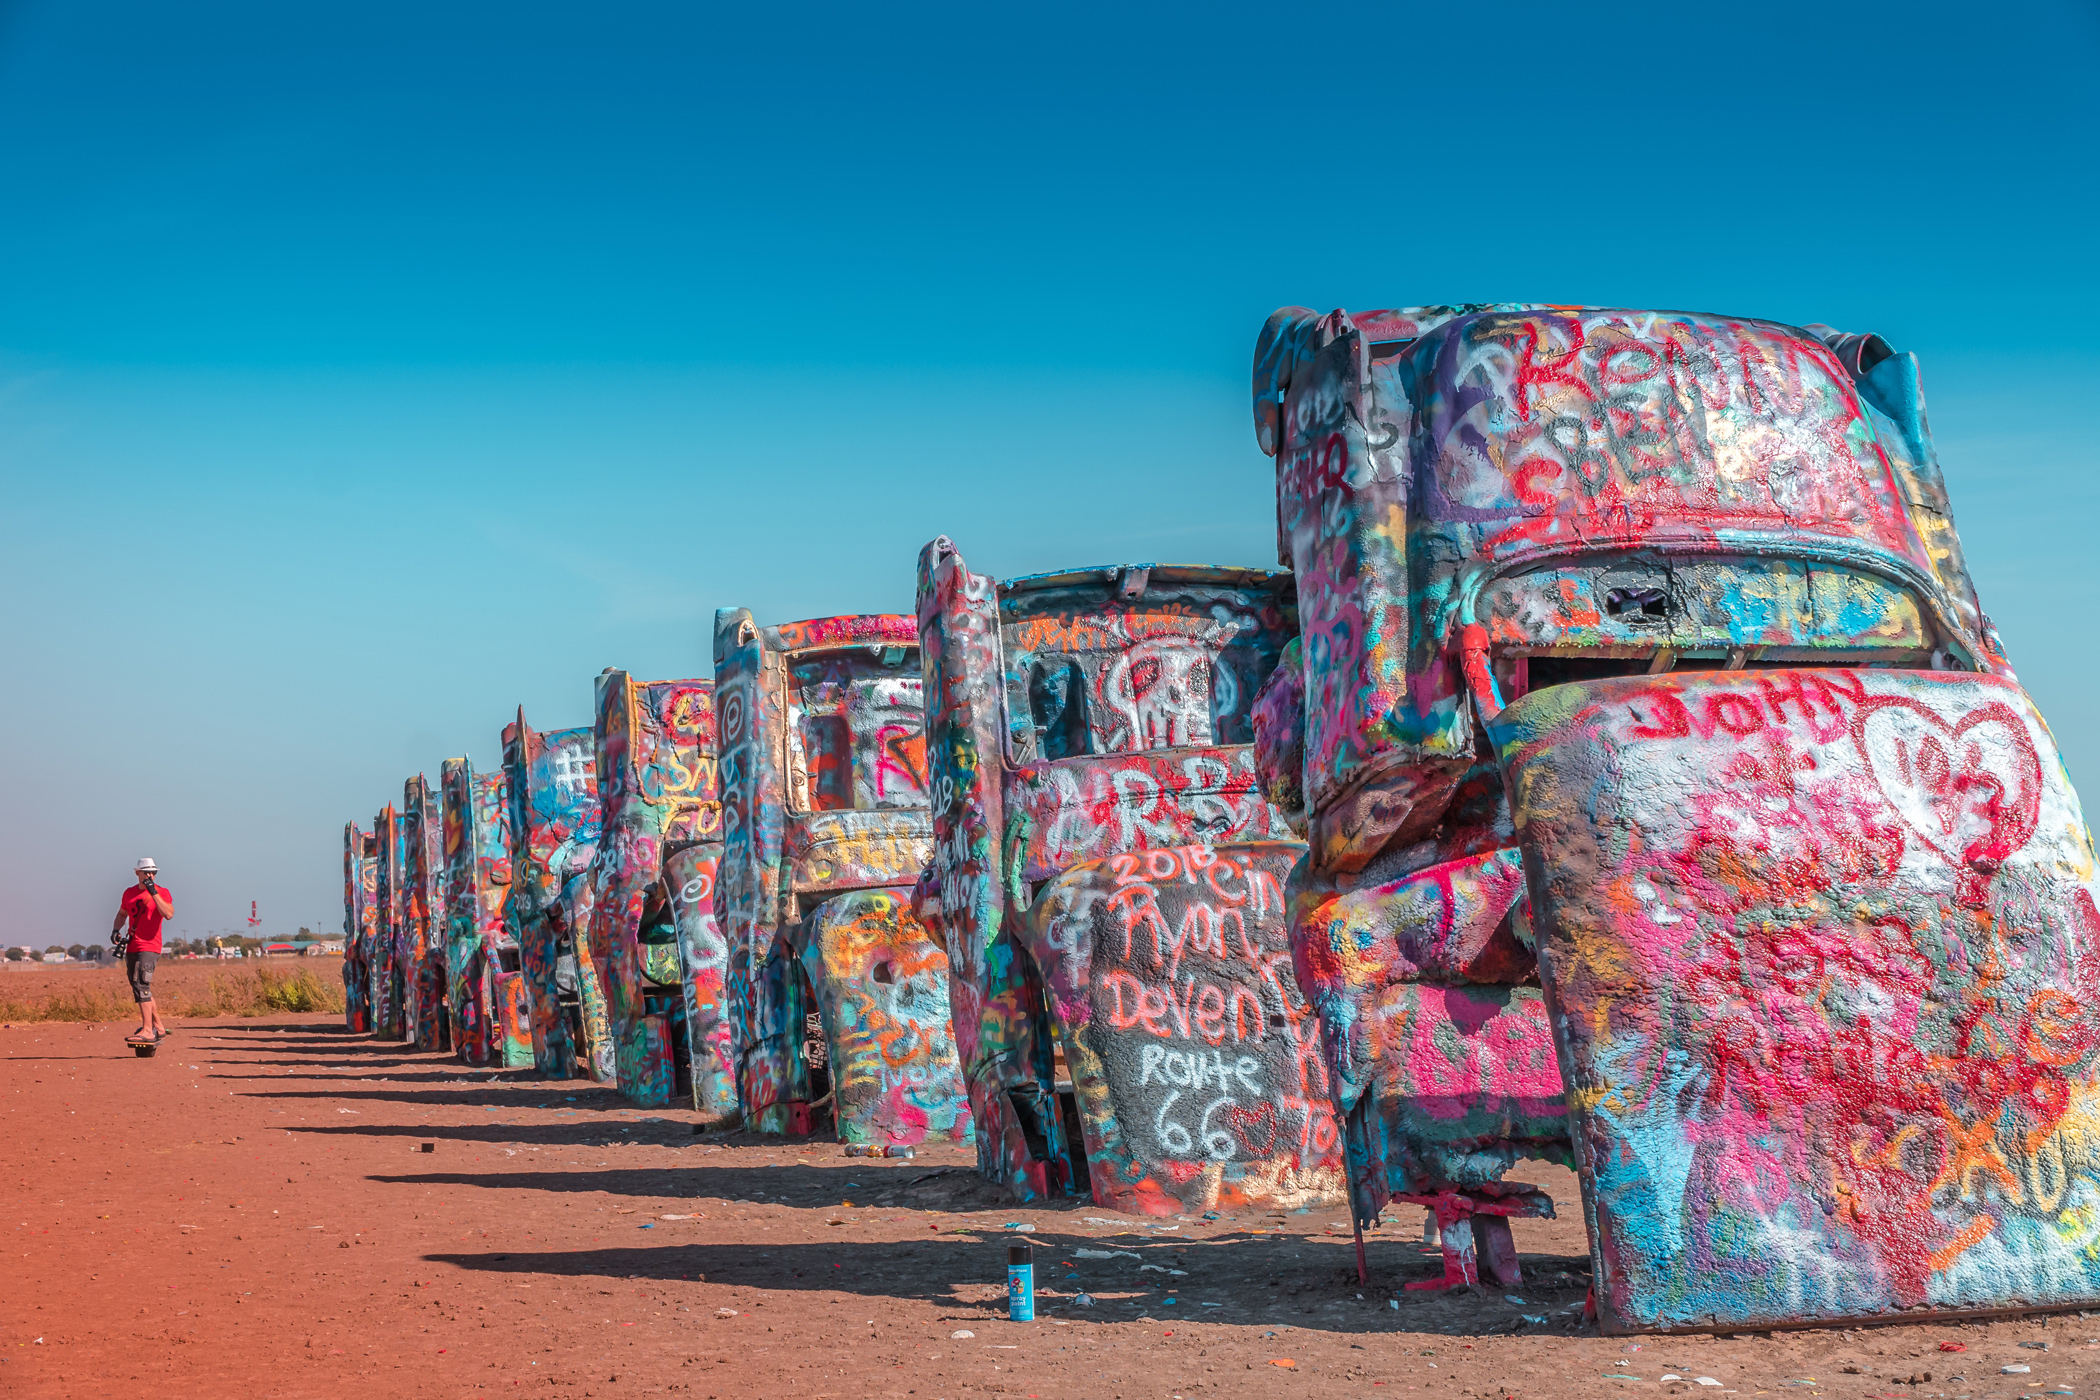 While it's not the work of Mother Nature, Cadillac Ranch is certainly a head-turner.